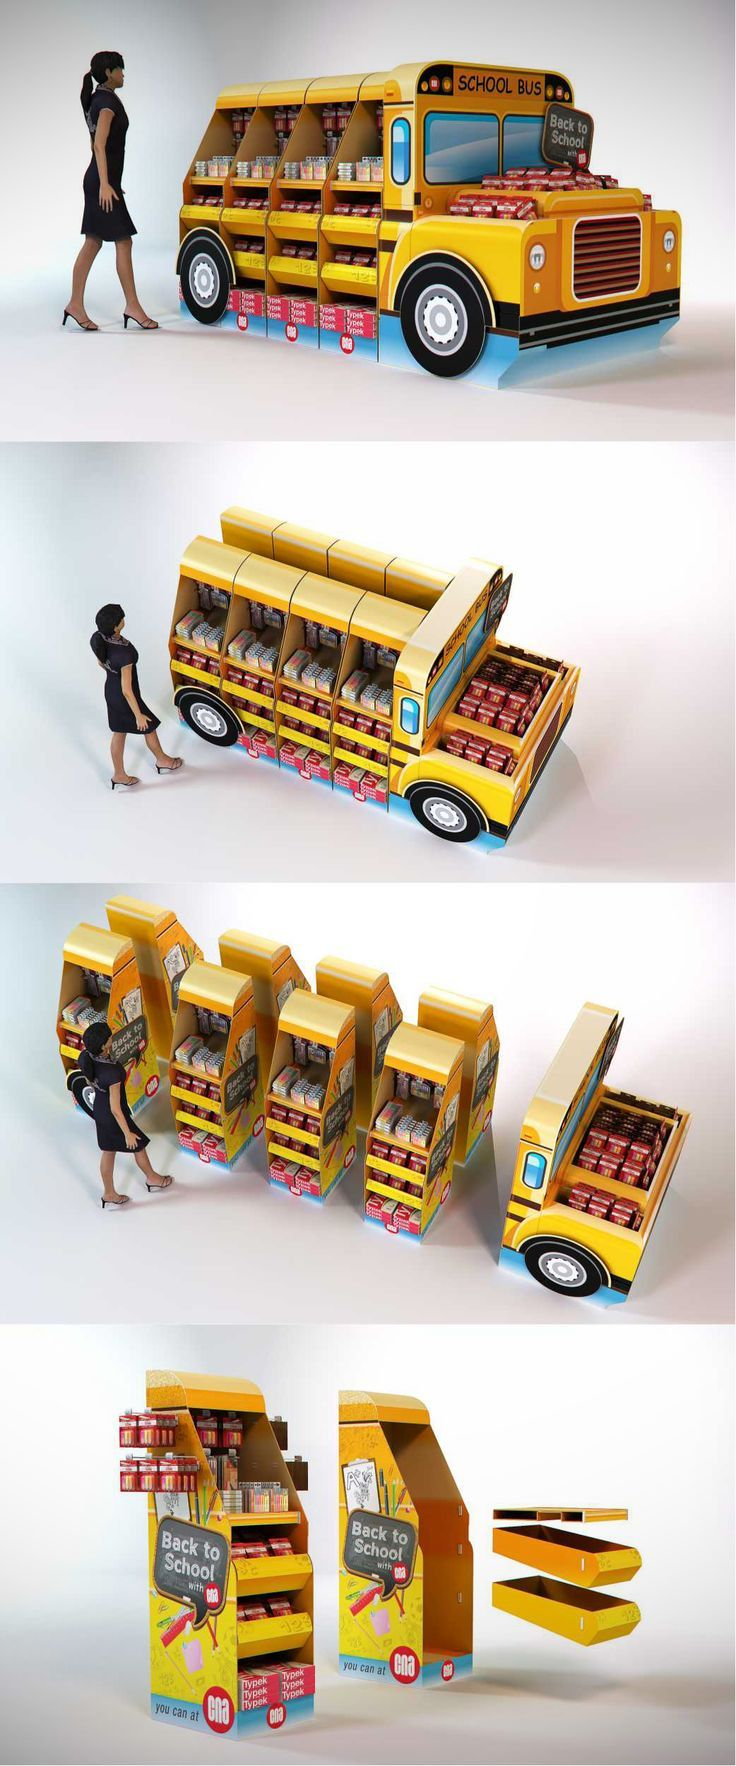 CNA back to school bus, POS, POP. Point of sale. Point of purchase.: